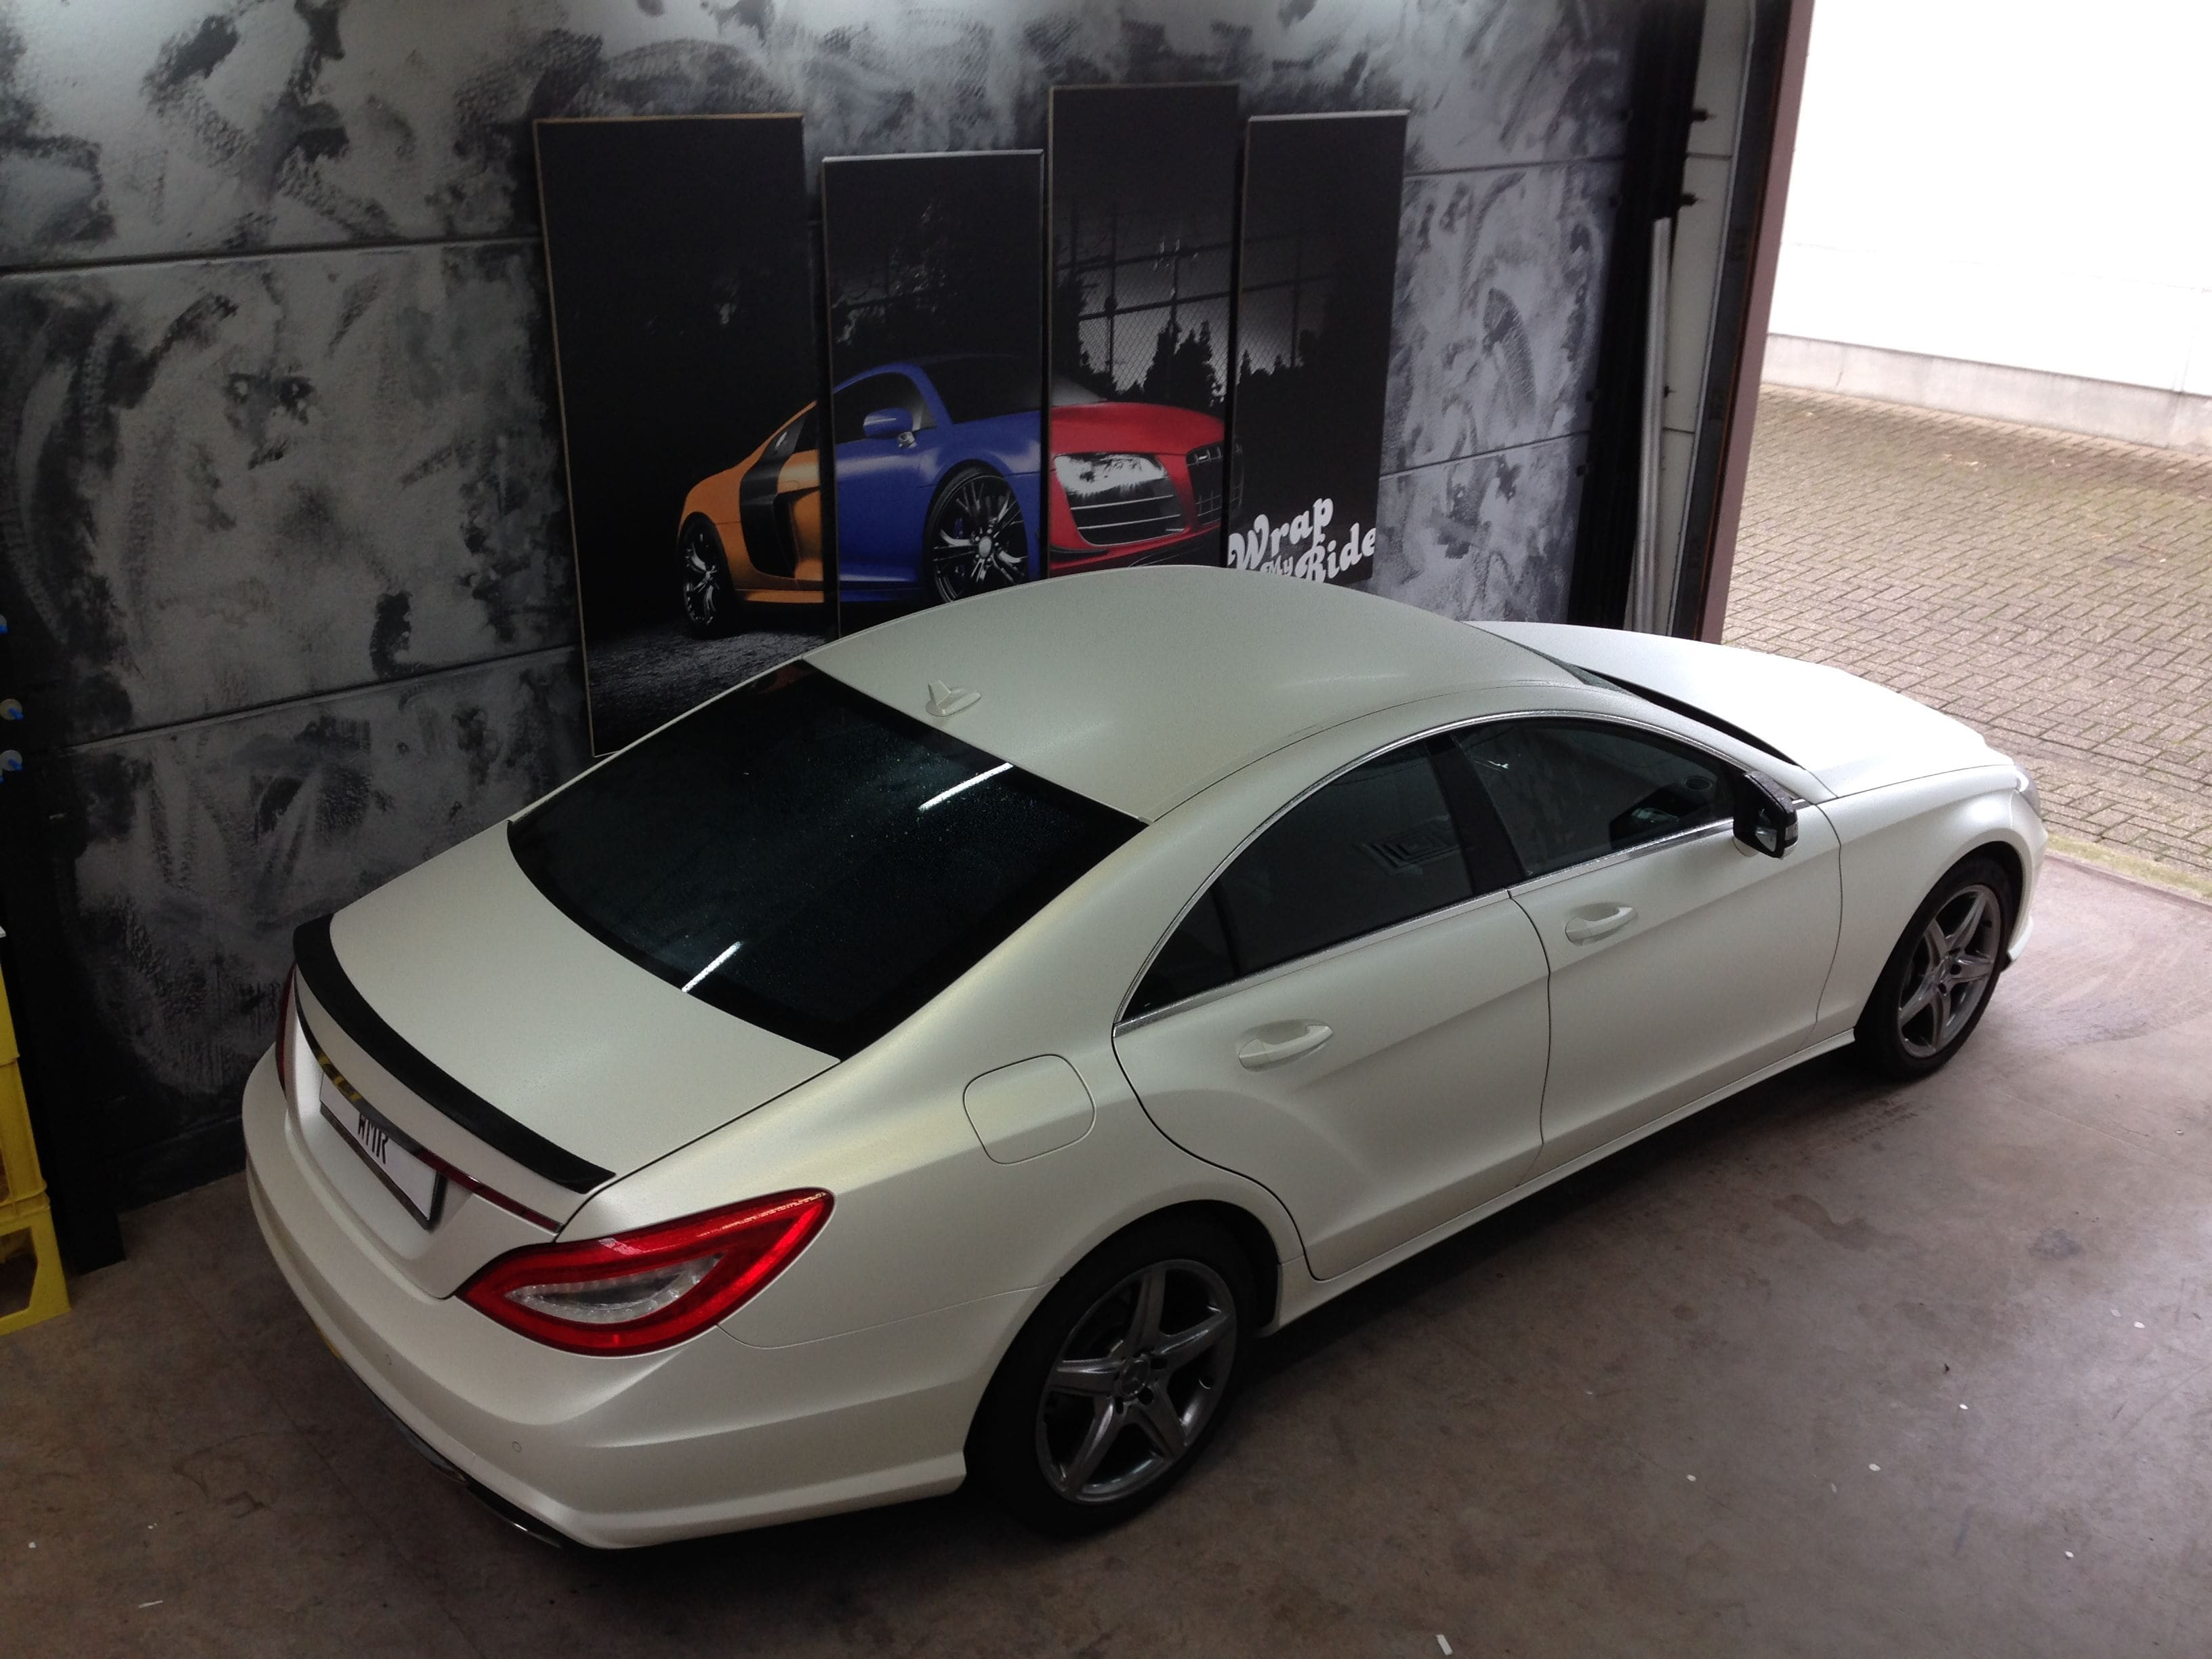 Mercedes CLS met White Satin Pearl Wrap, Carwrapping door Wrapmyride.nu Foto-nr:6218, ©2020